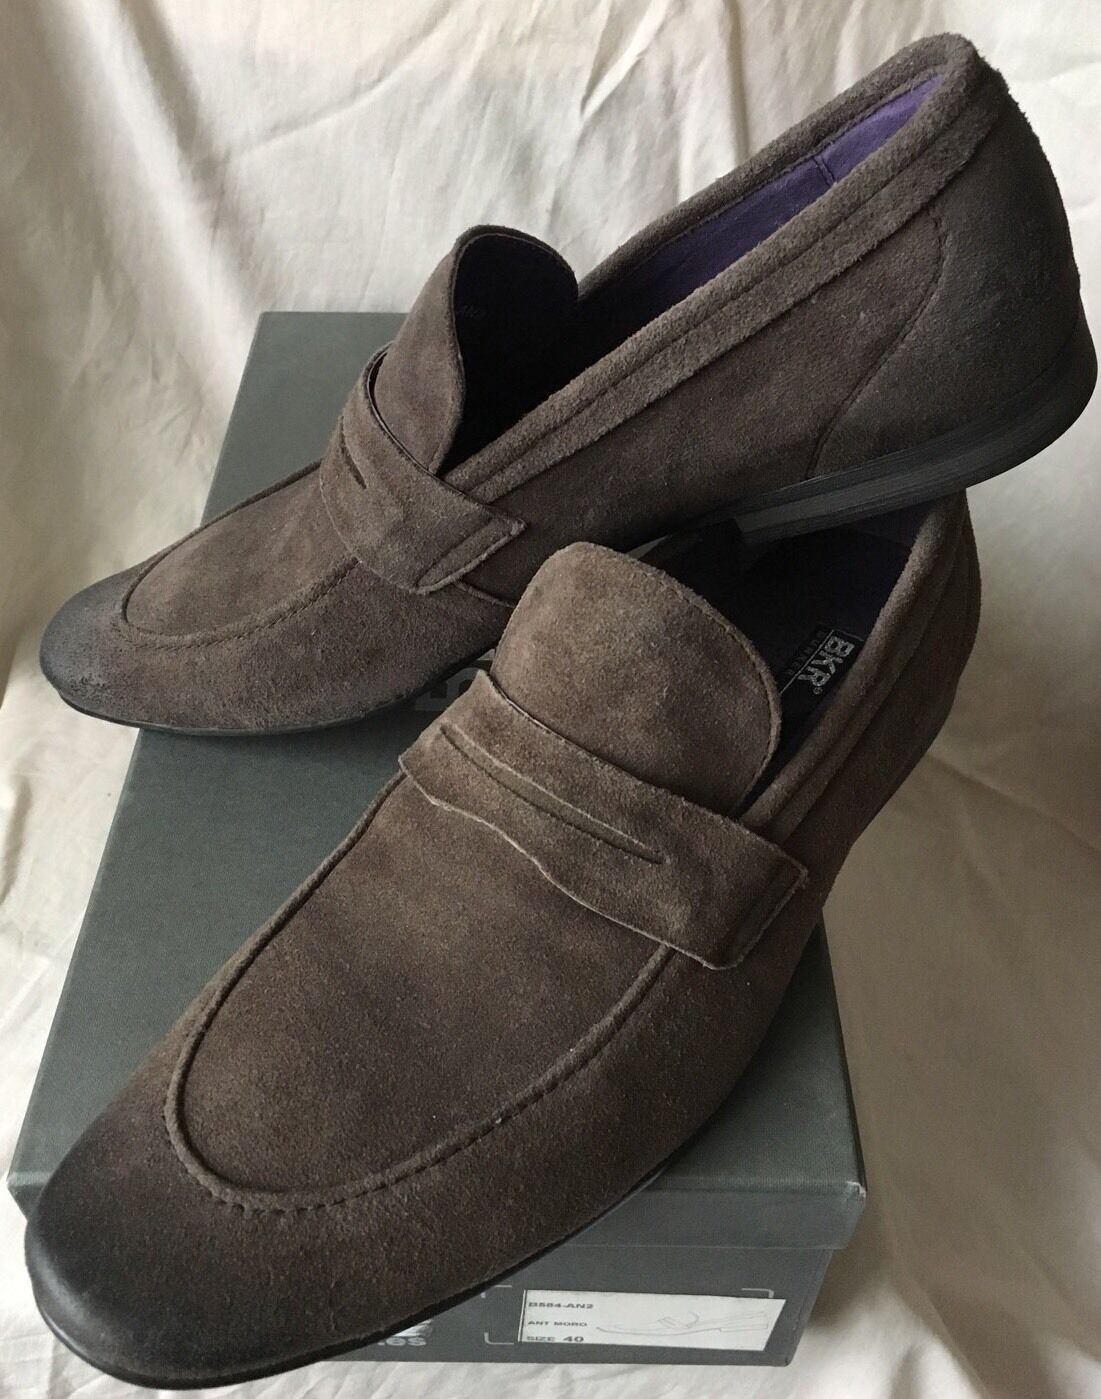 SOLD OUT RARE BROWN BUNKER BKR LEATHER Schuhe MOCASSINS Schuhe LEATHER CHAUSSURES  B584 SIZE 40 300cfd